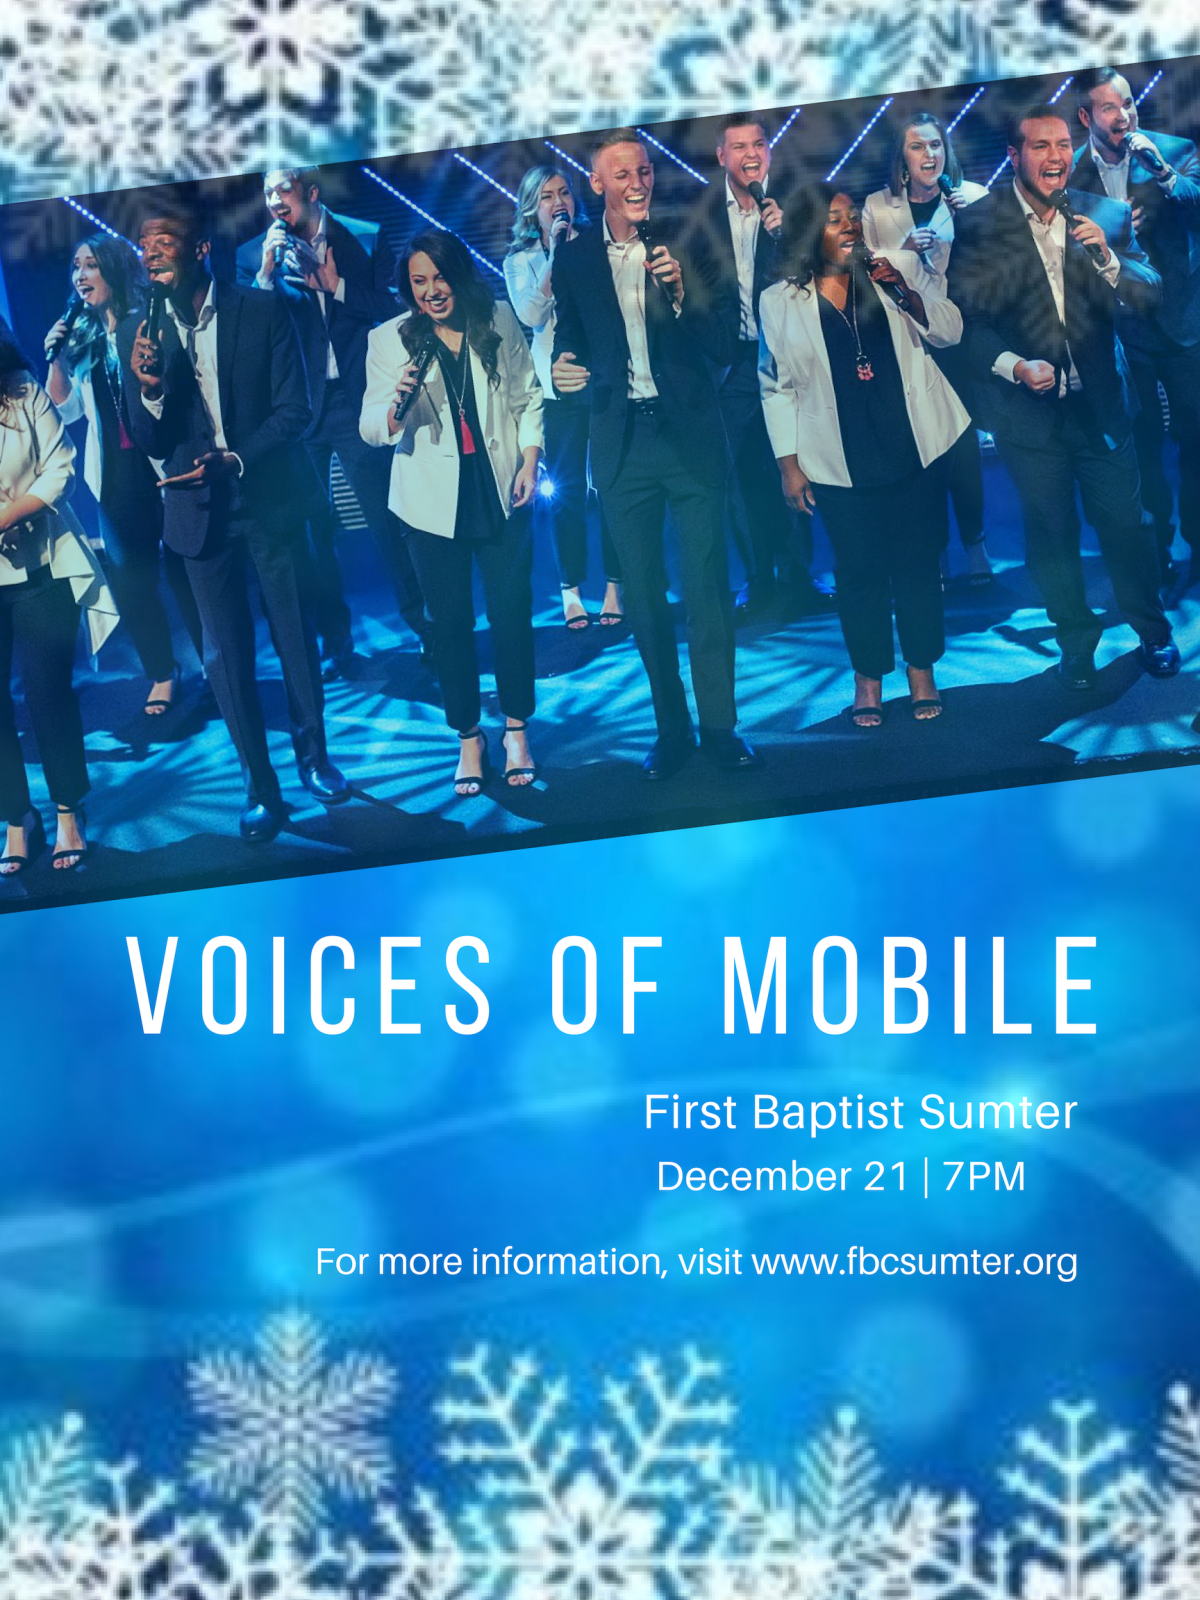 Voices of Mobile